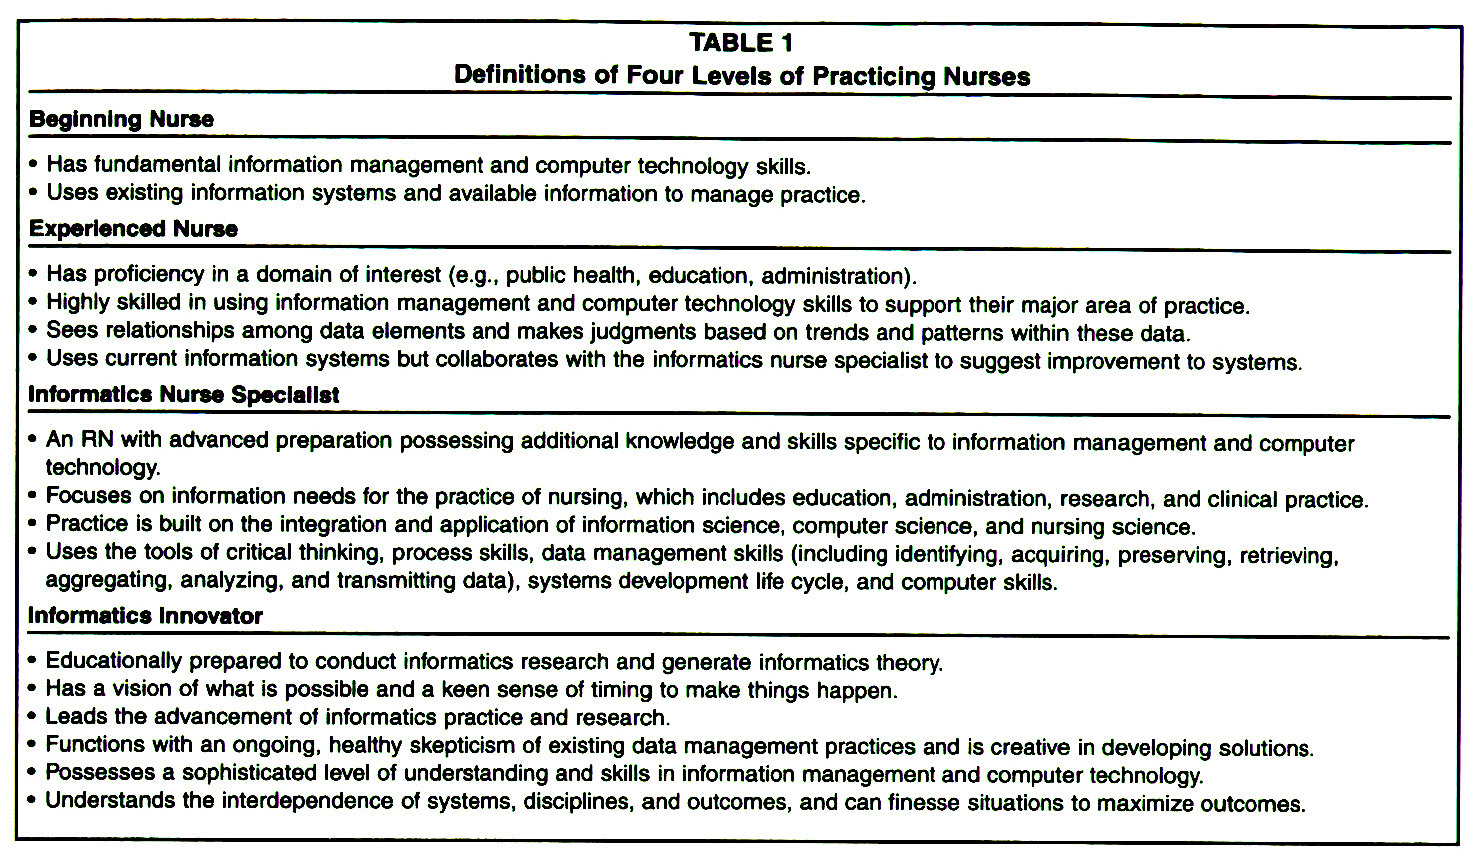 competency of level 4 nursing students 5 chapter 1 ok - download as word doc (doc), pdf file (pdf), text file (txt) or read online  what is the mean competency level of level iv nursing students in .